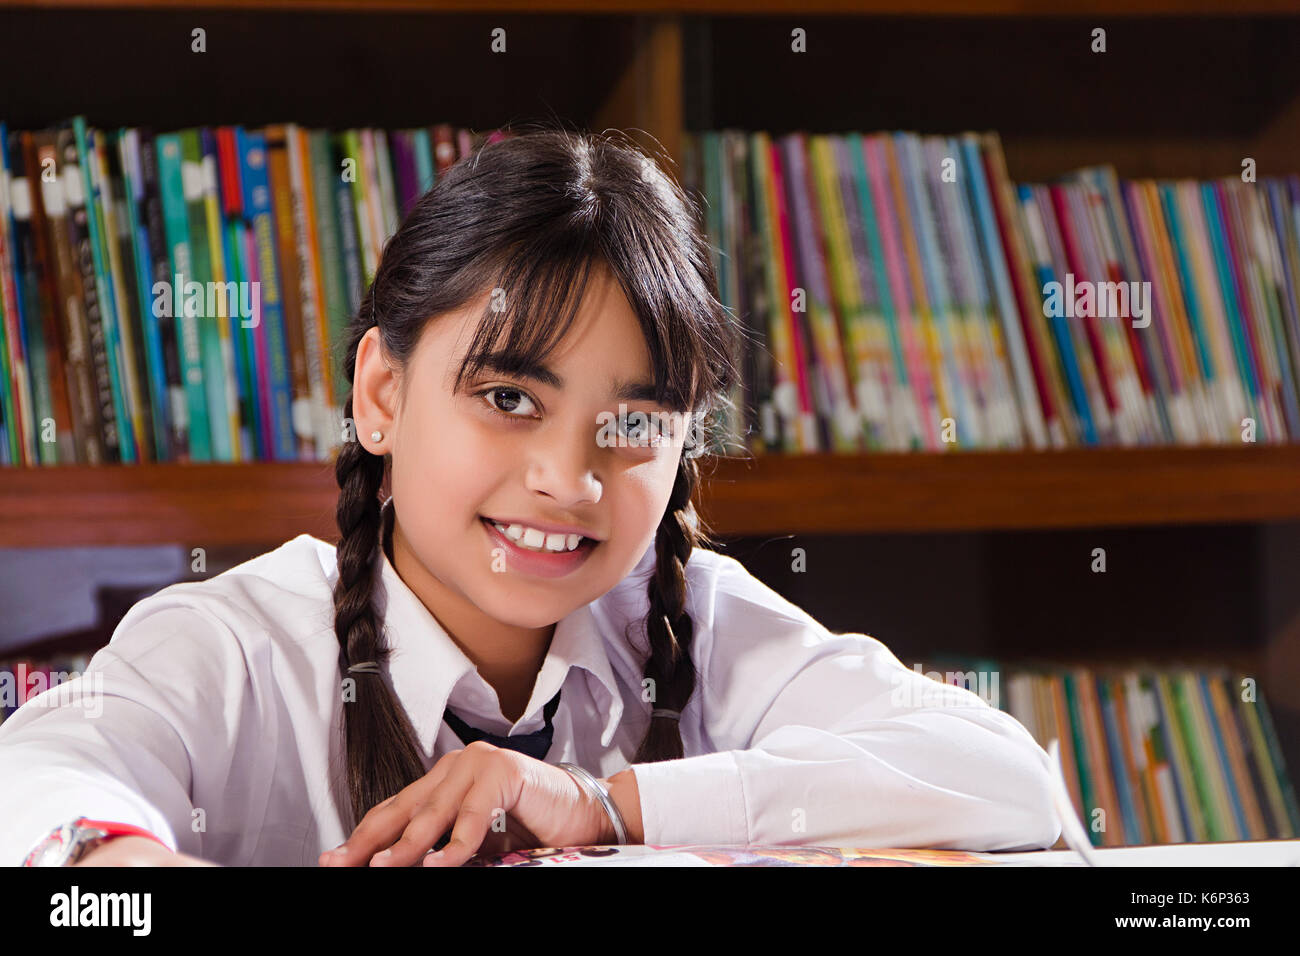 Indian Little Girl Studying Stock Photos & Indian Little